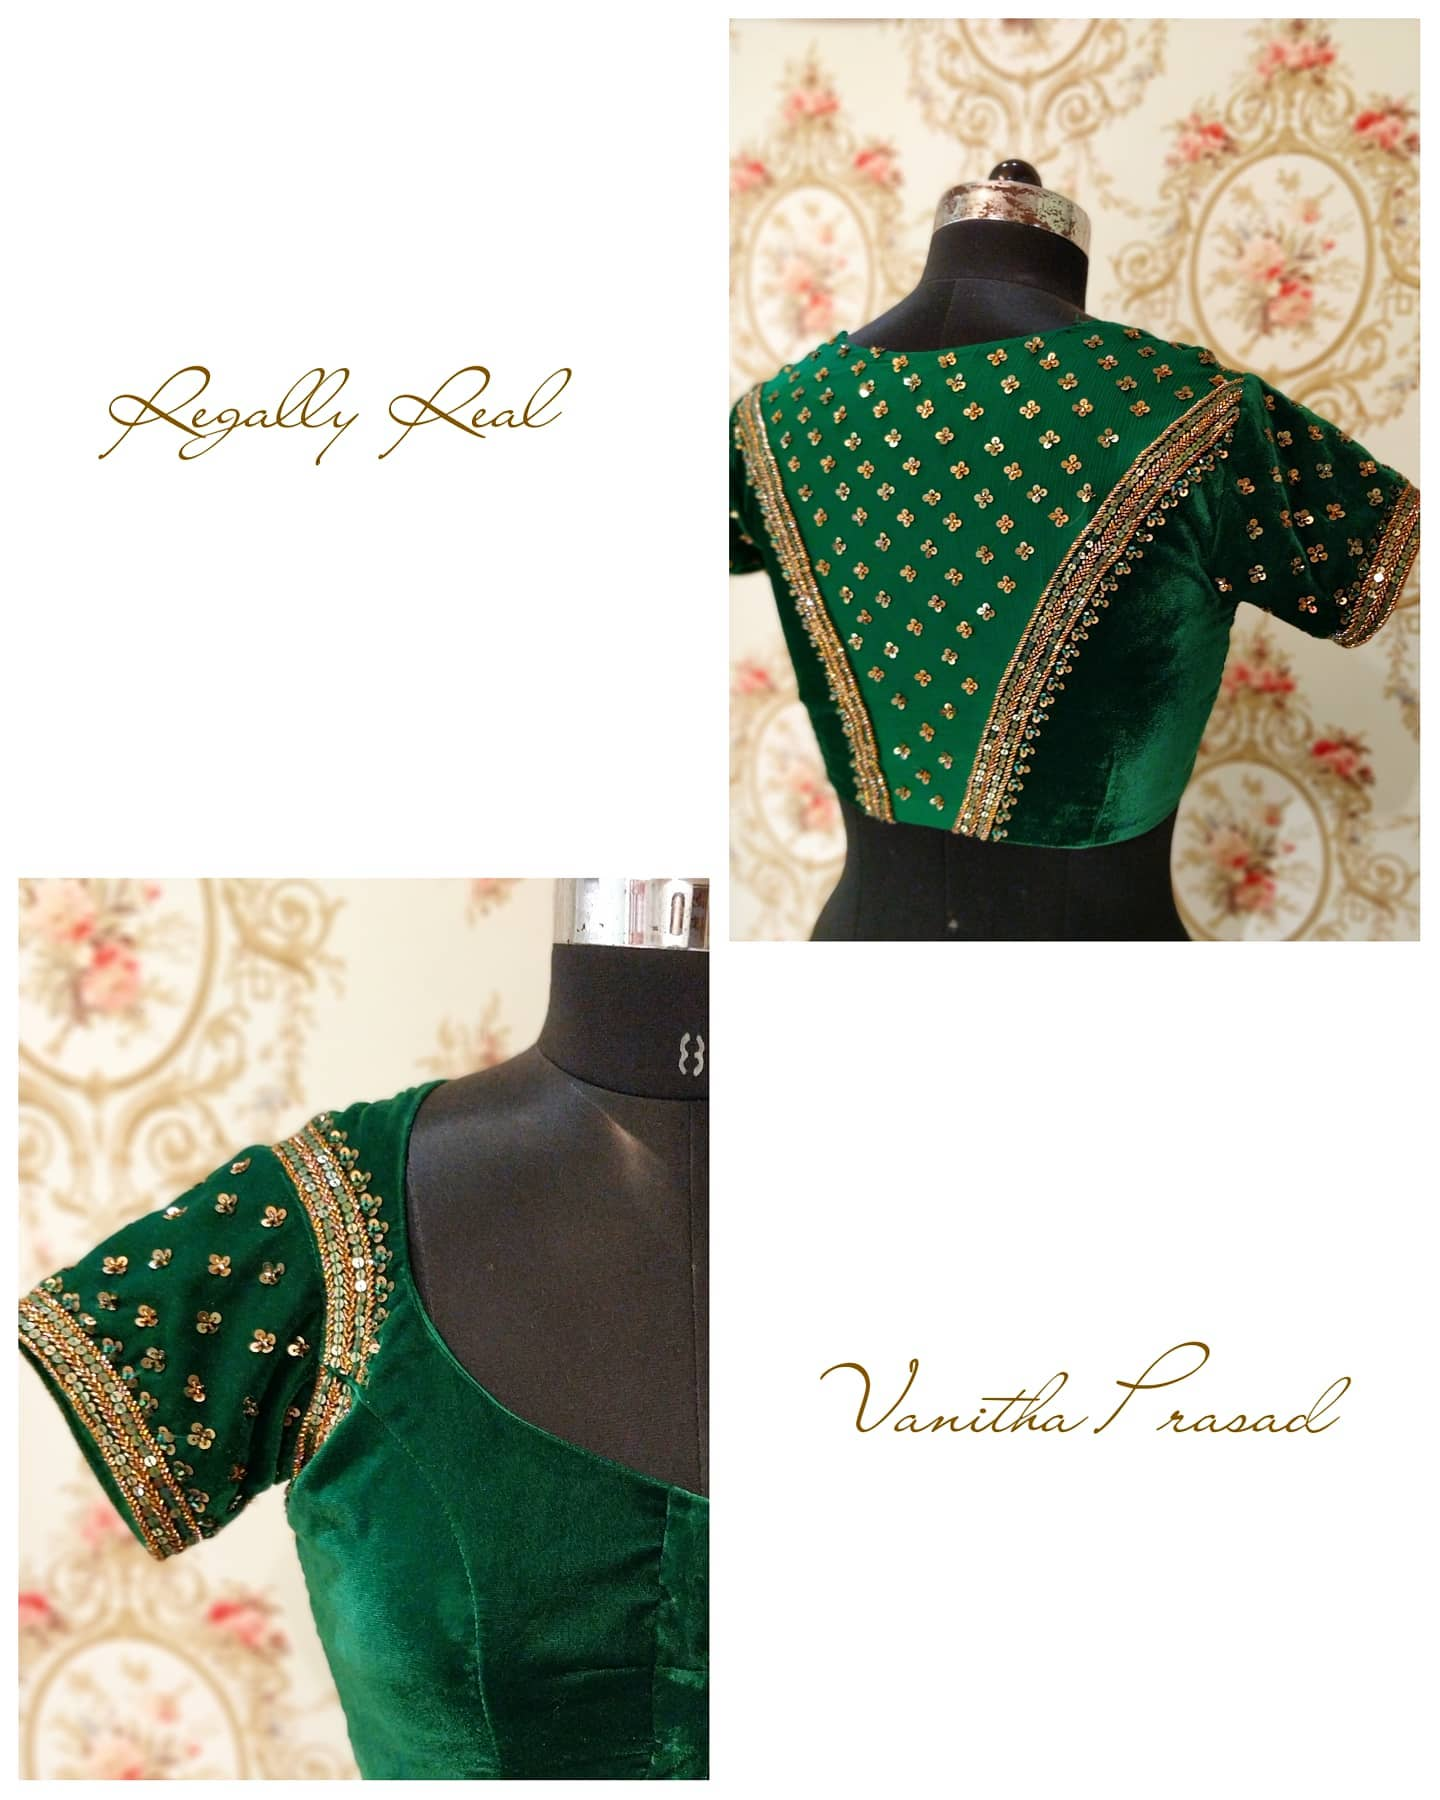 Gorgeous Green Color Velvet Cloth Designer Blouse With Floral Buti Design Hand Embroidery Zardosi Work Allover The Blouse New Saree Blouse Design New Style Blouse Design Wala Blouse 2020 11 17